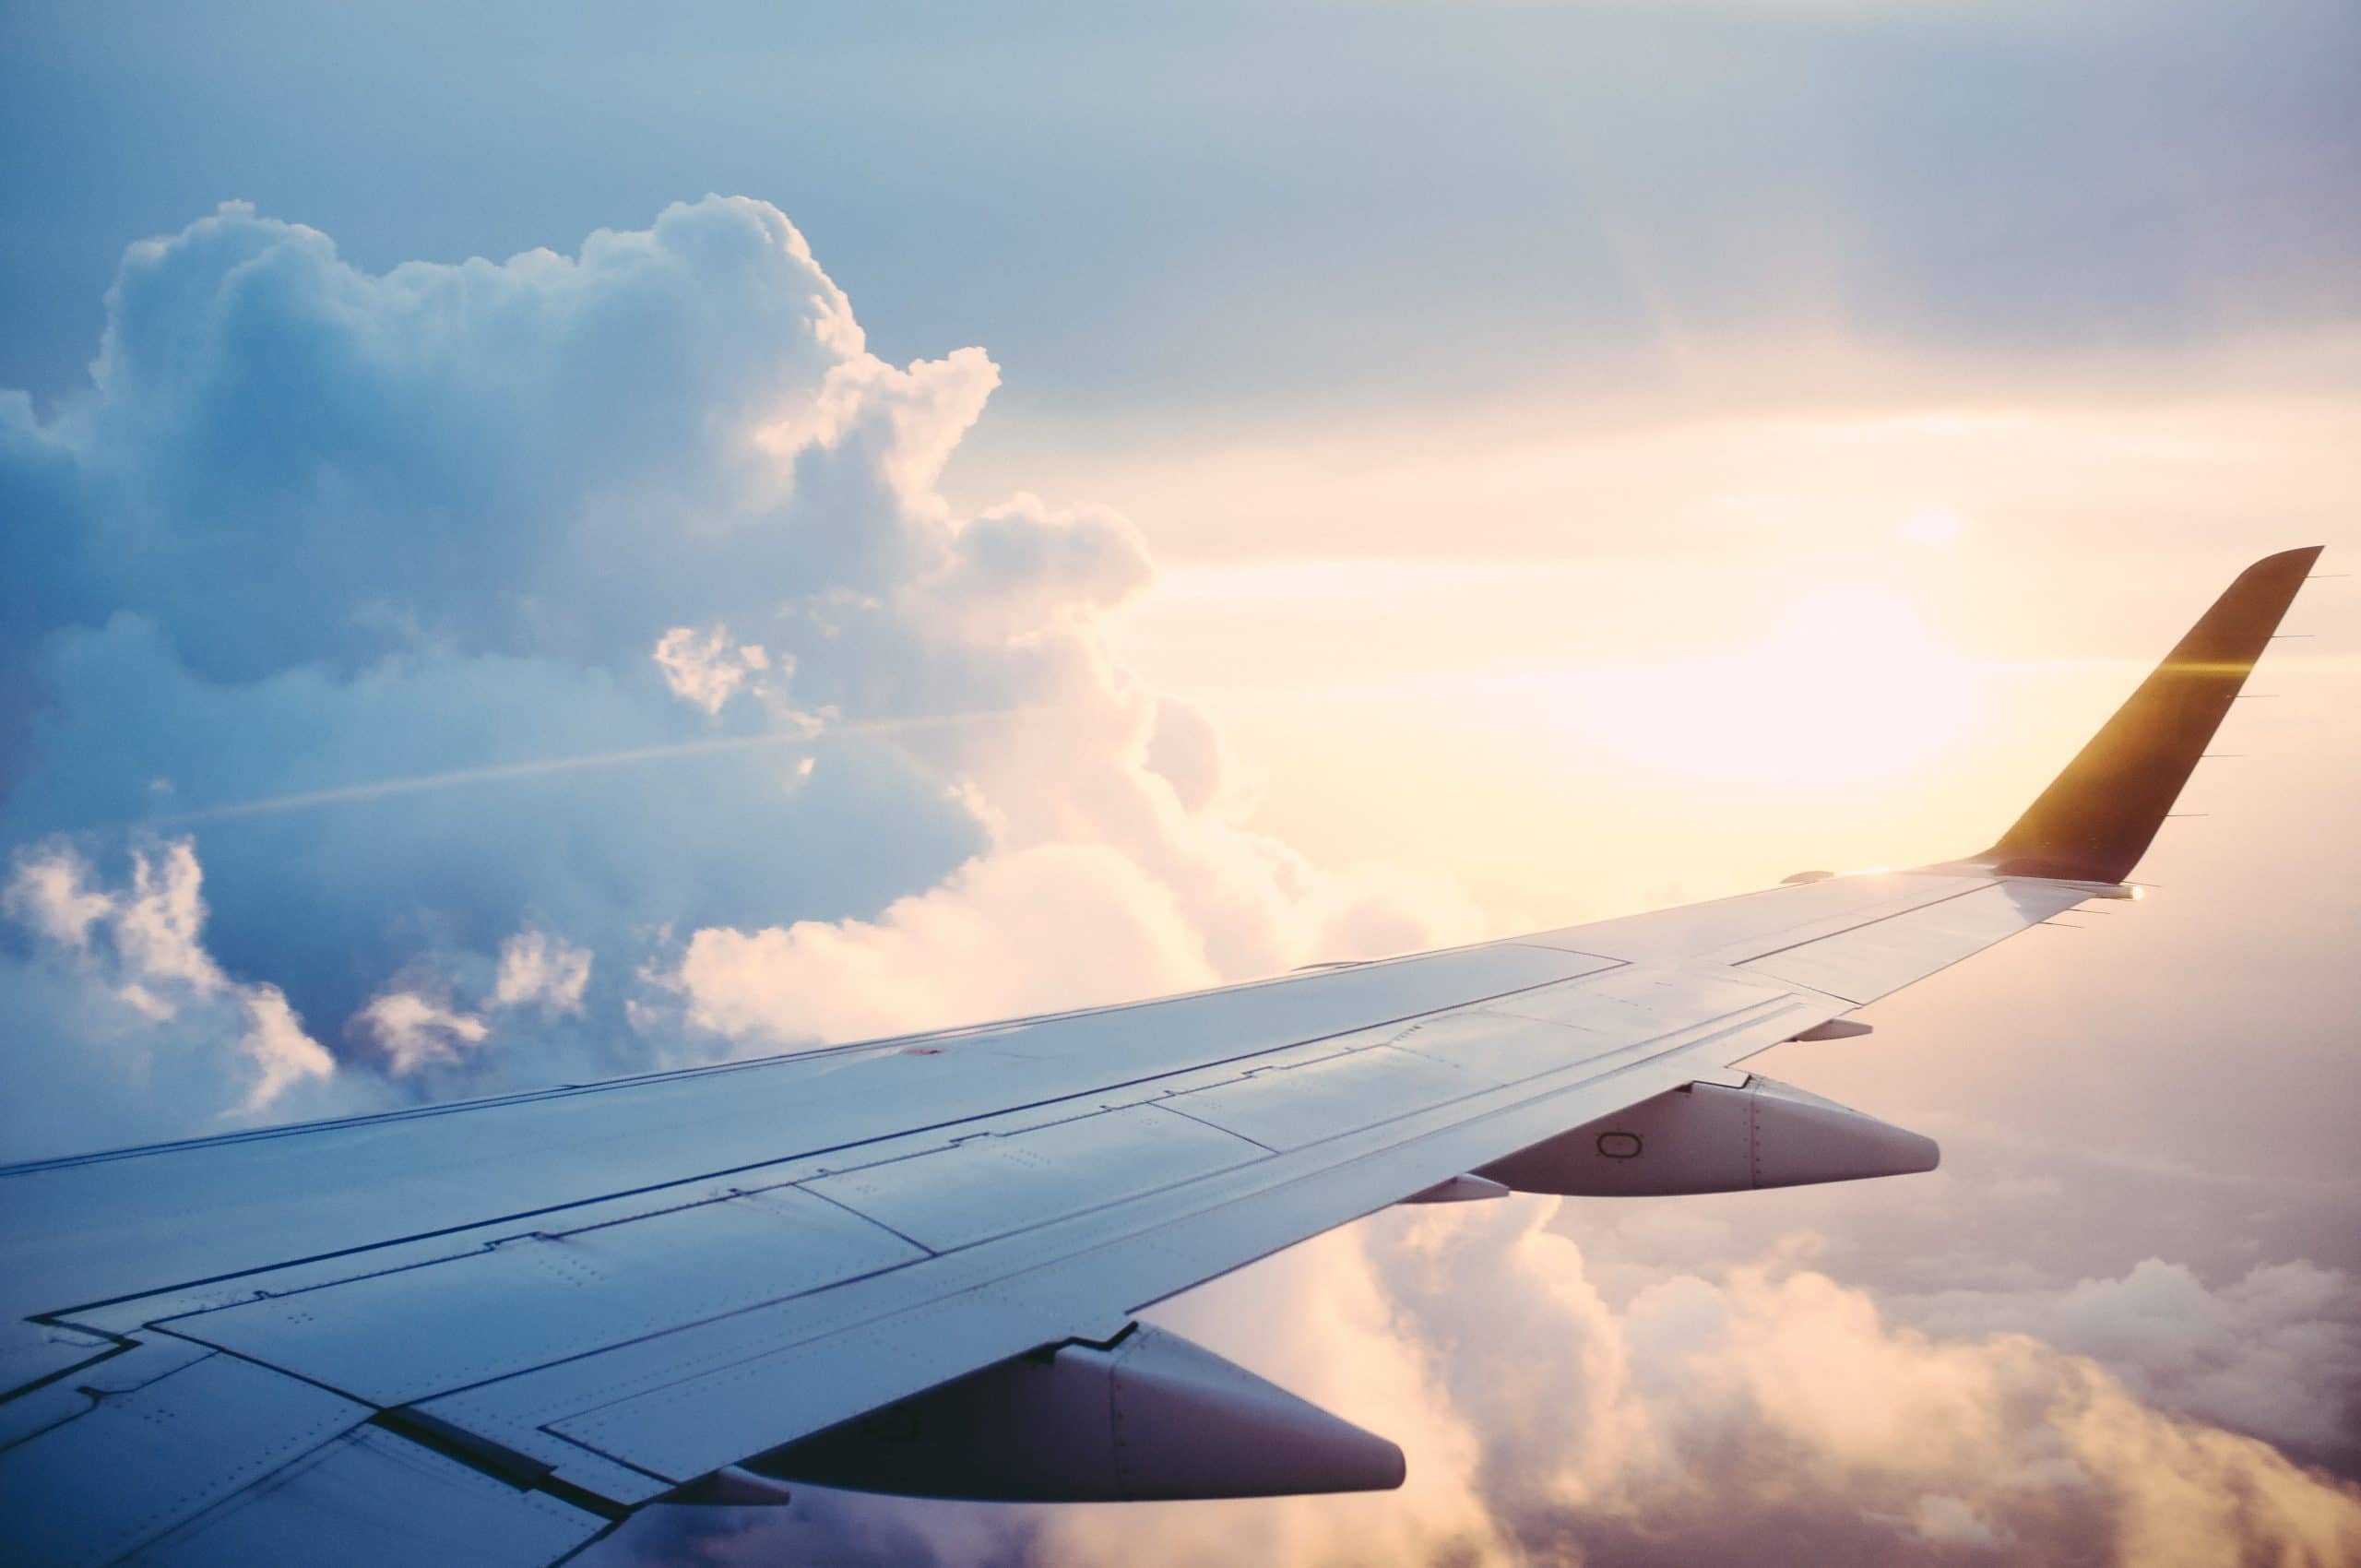 Airport transfers Sunshine Coast to Noosa - airplane in the sky with clouds